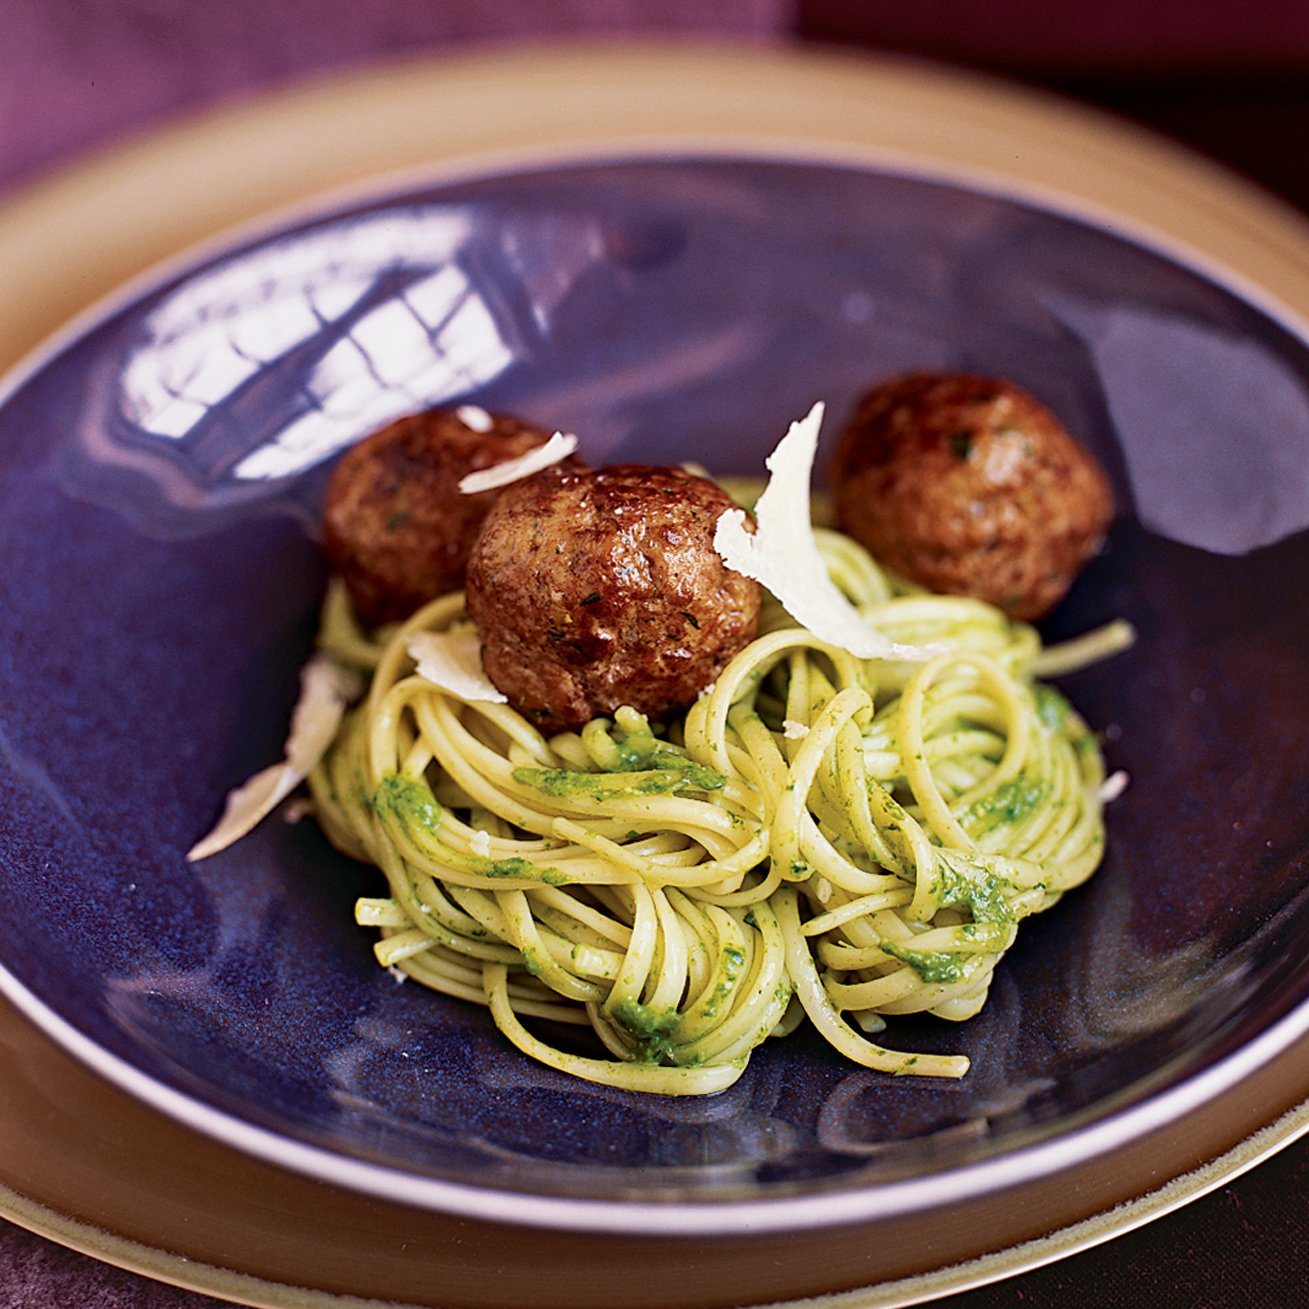 Tagliarini with Almond-Arugula Pesto and Meatballs